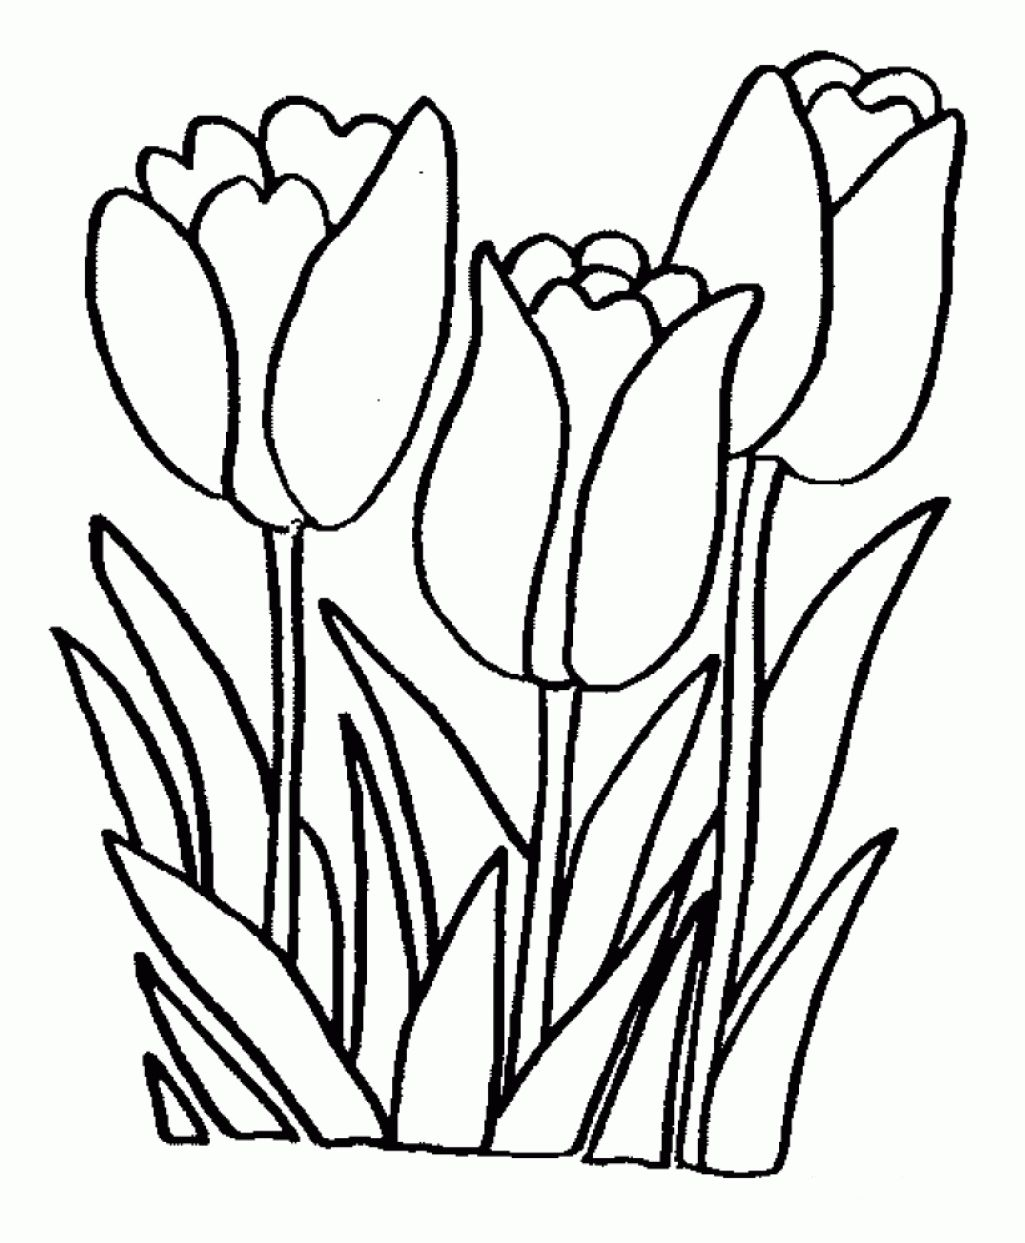 1025x1243 Coloring Pages Flower Free Printable Coloring Pages Easy Printable